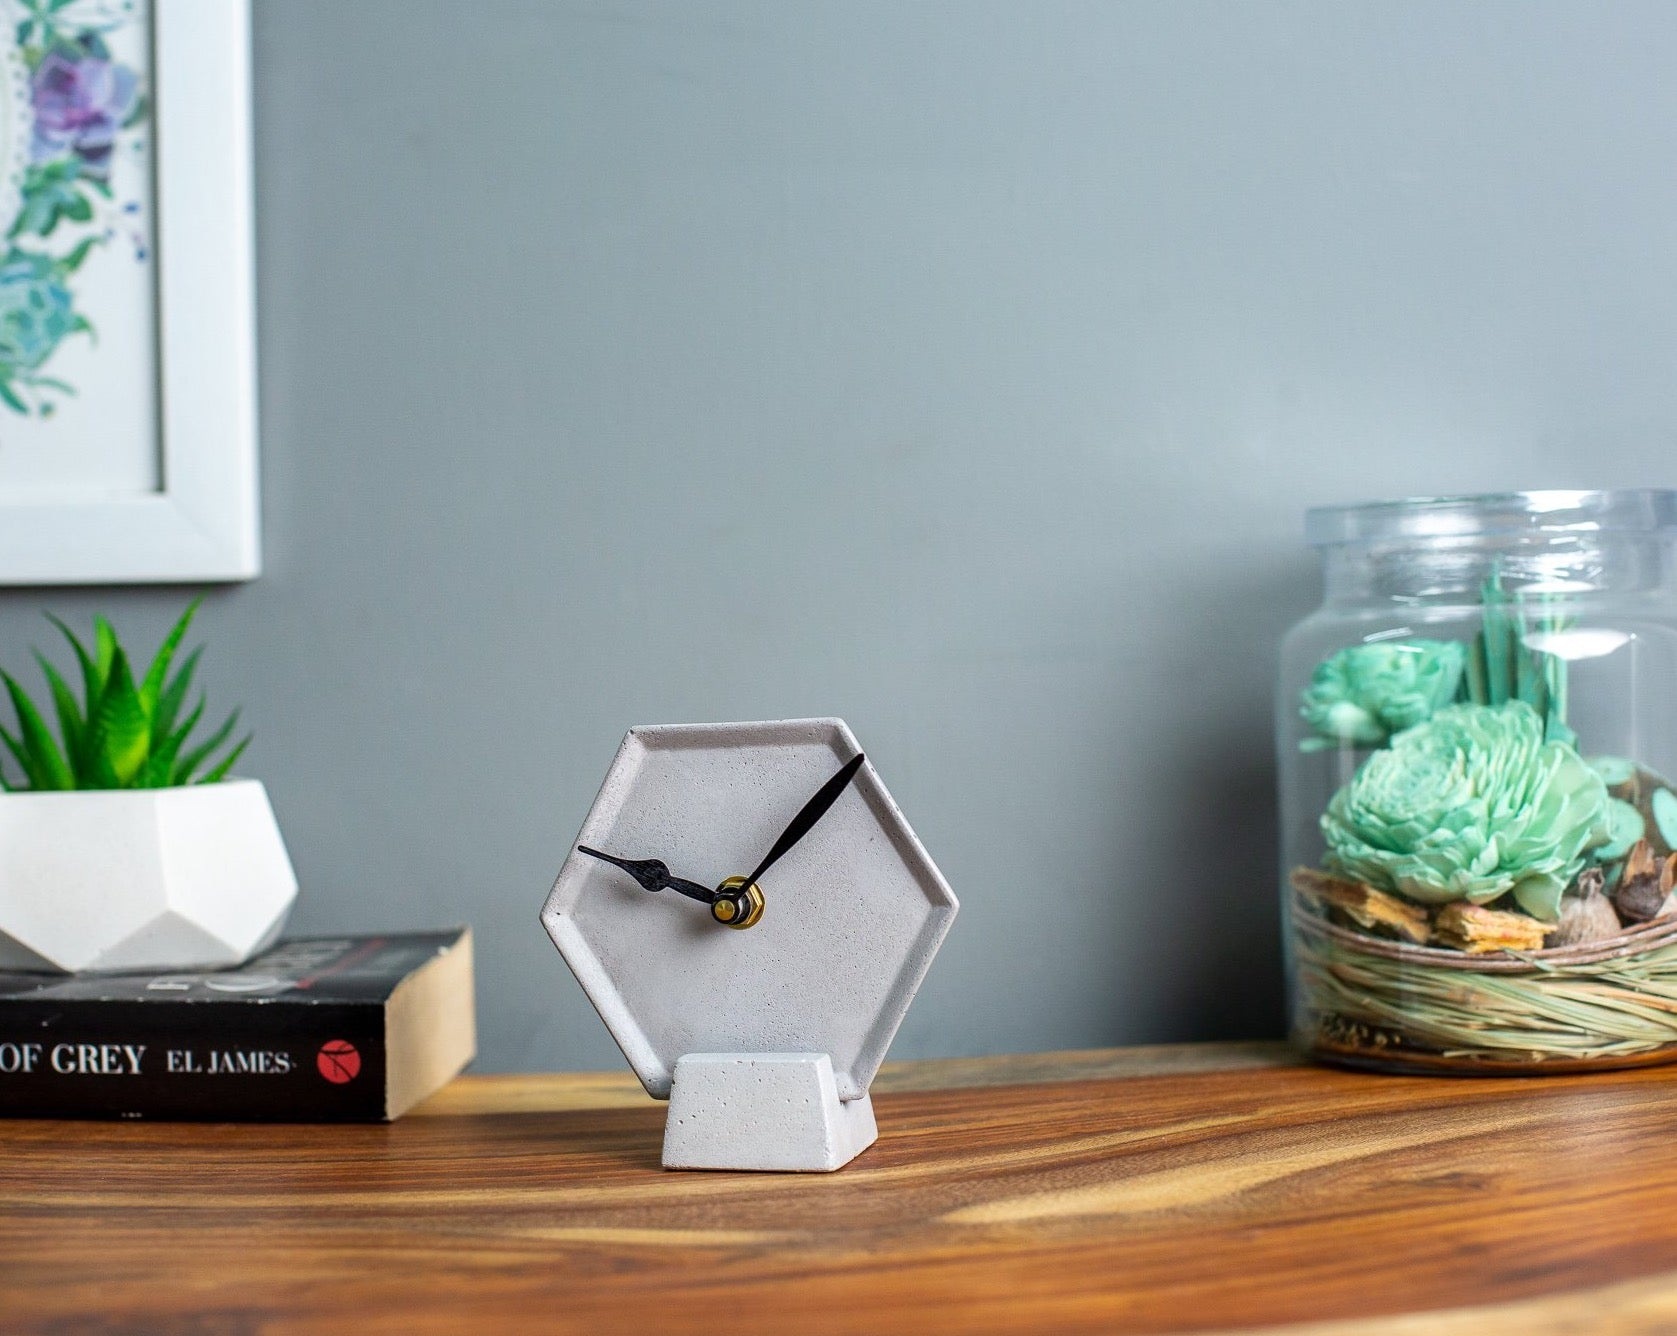 Concrete Mini Hexa Tabletop Clock Grey-Eliteearth